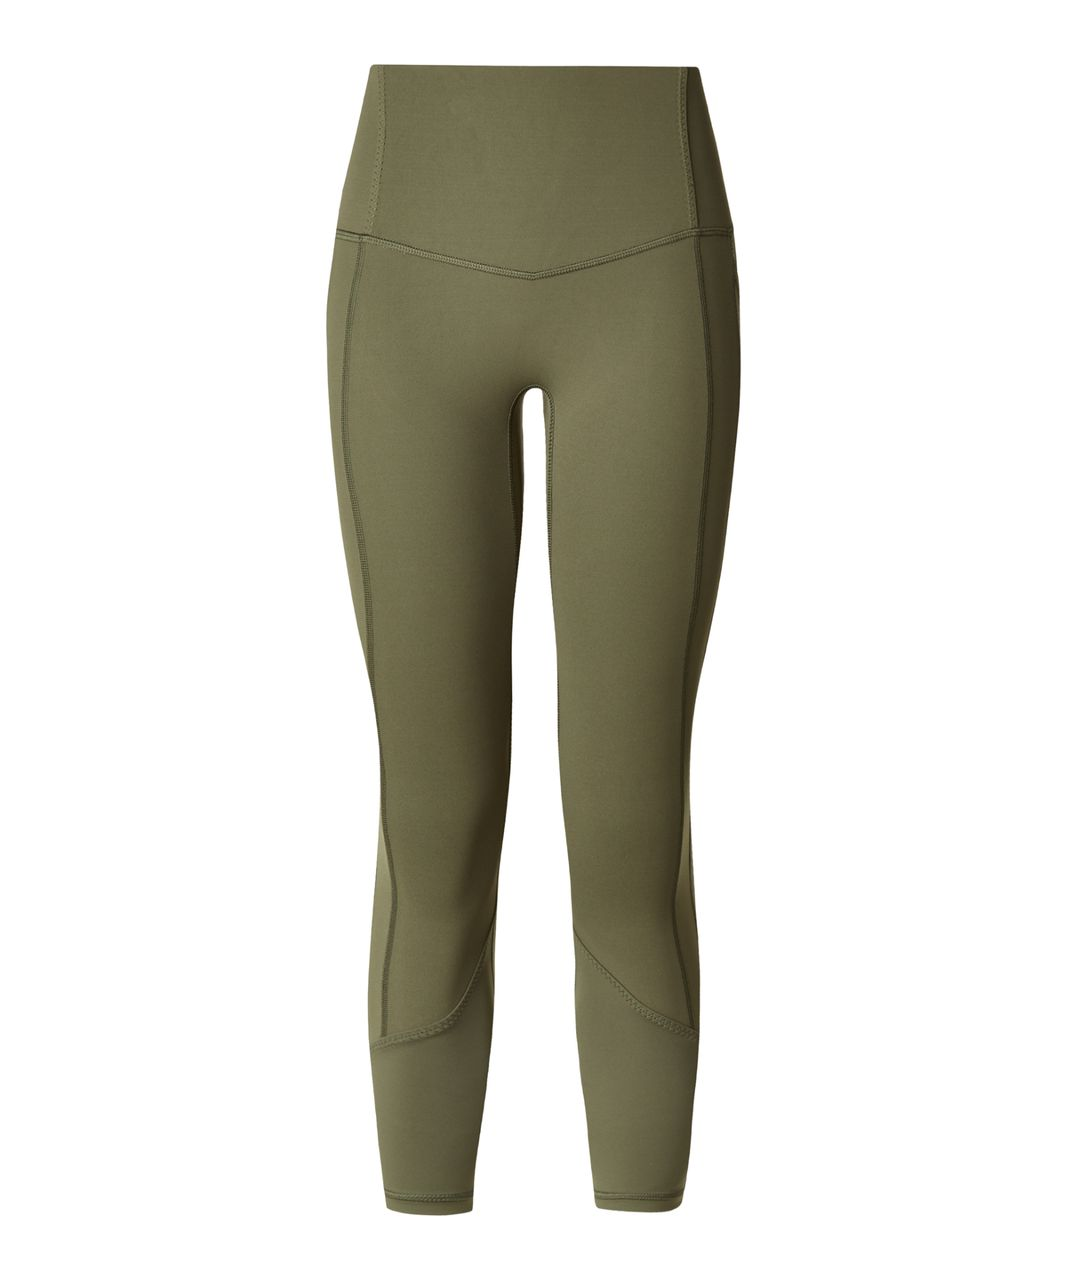 Lululemon All The Right Places Crop - Fatigue Green